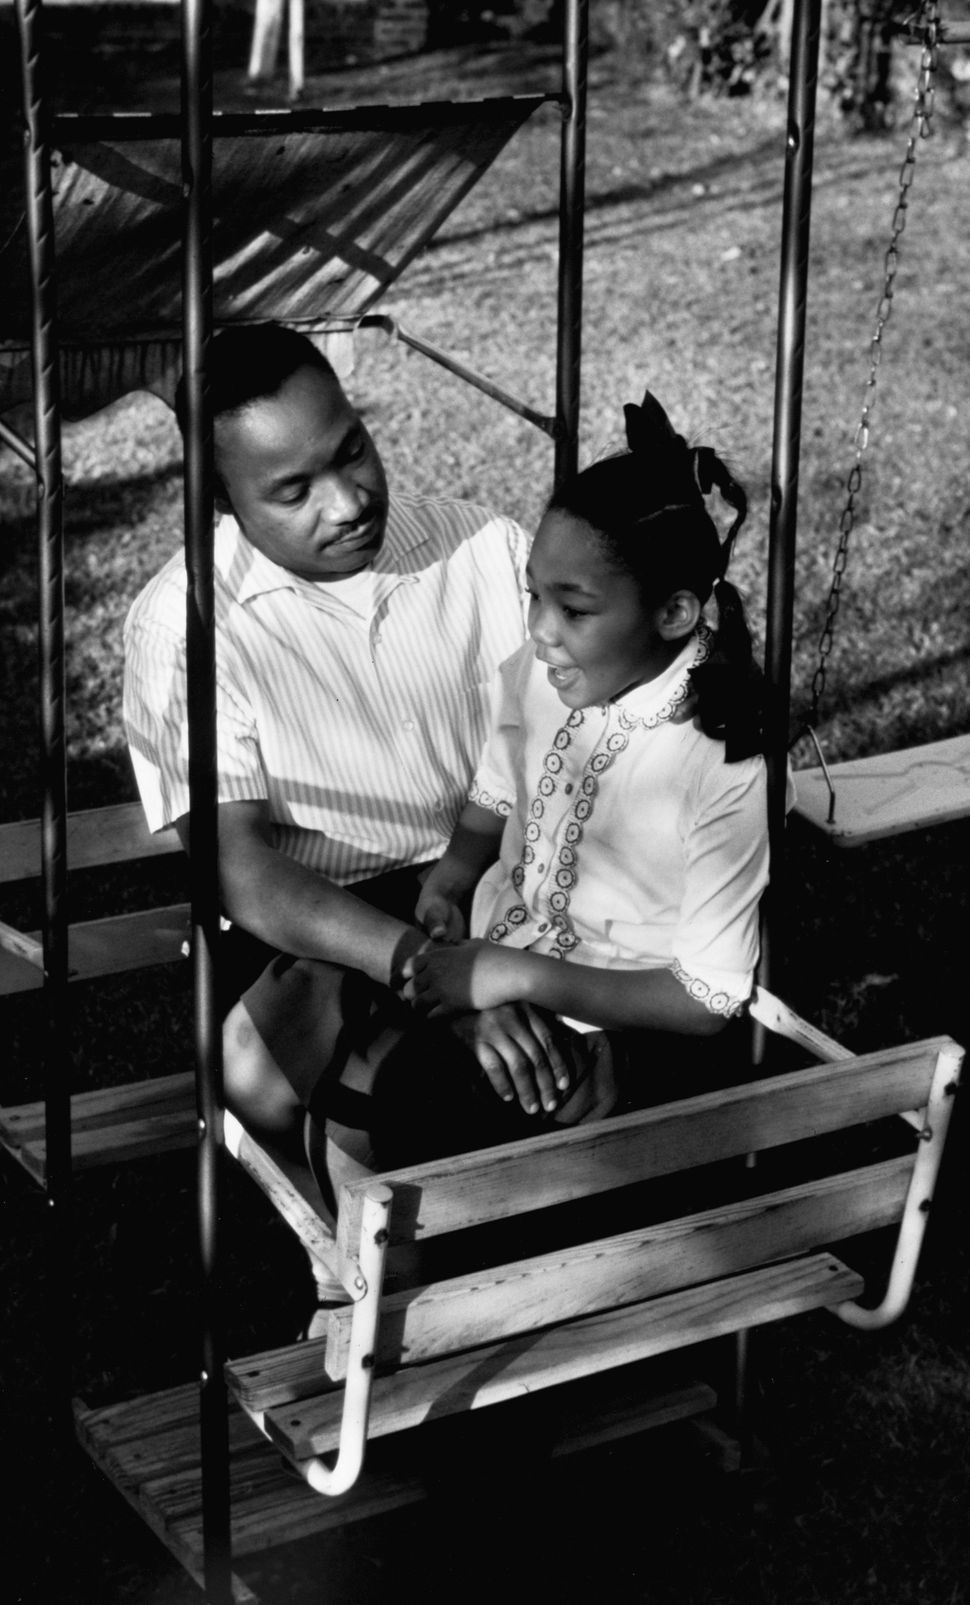 Martin Luther King Jr. talks with his daughter on a swing set in the backyard of their home in Atlanta.